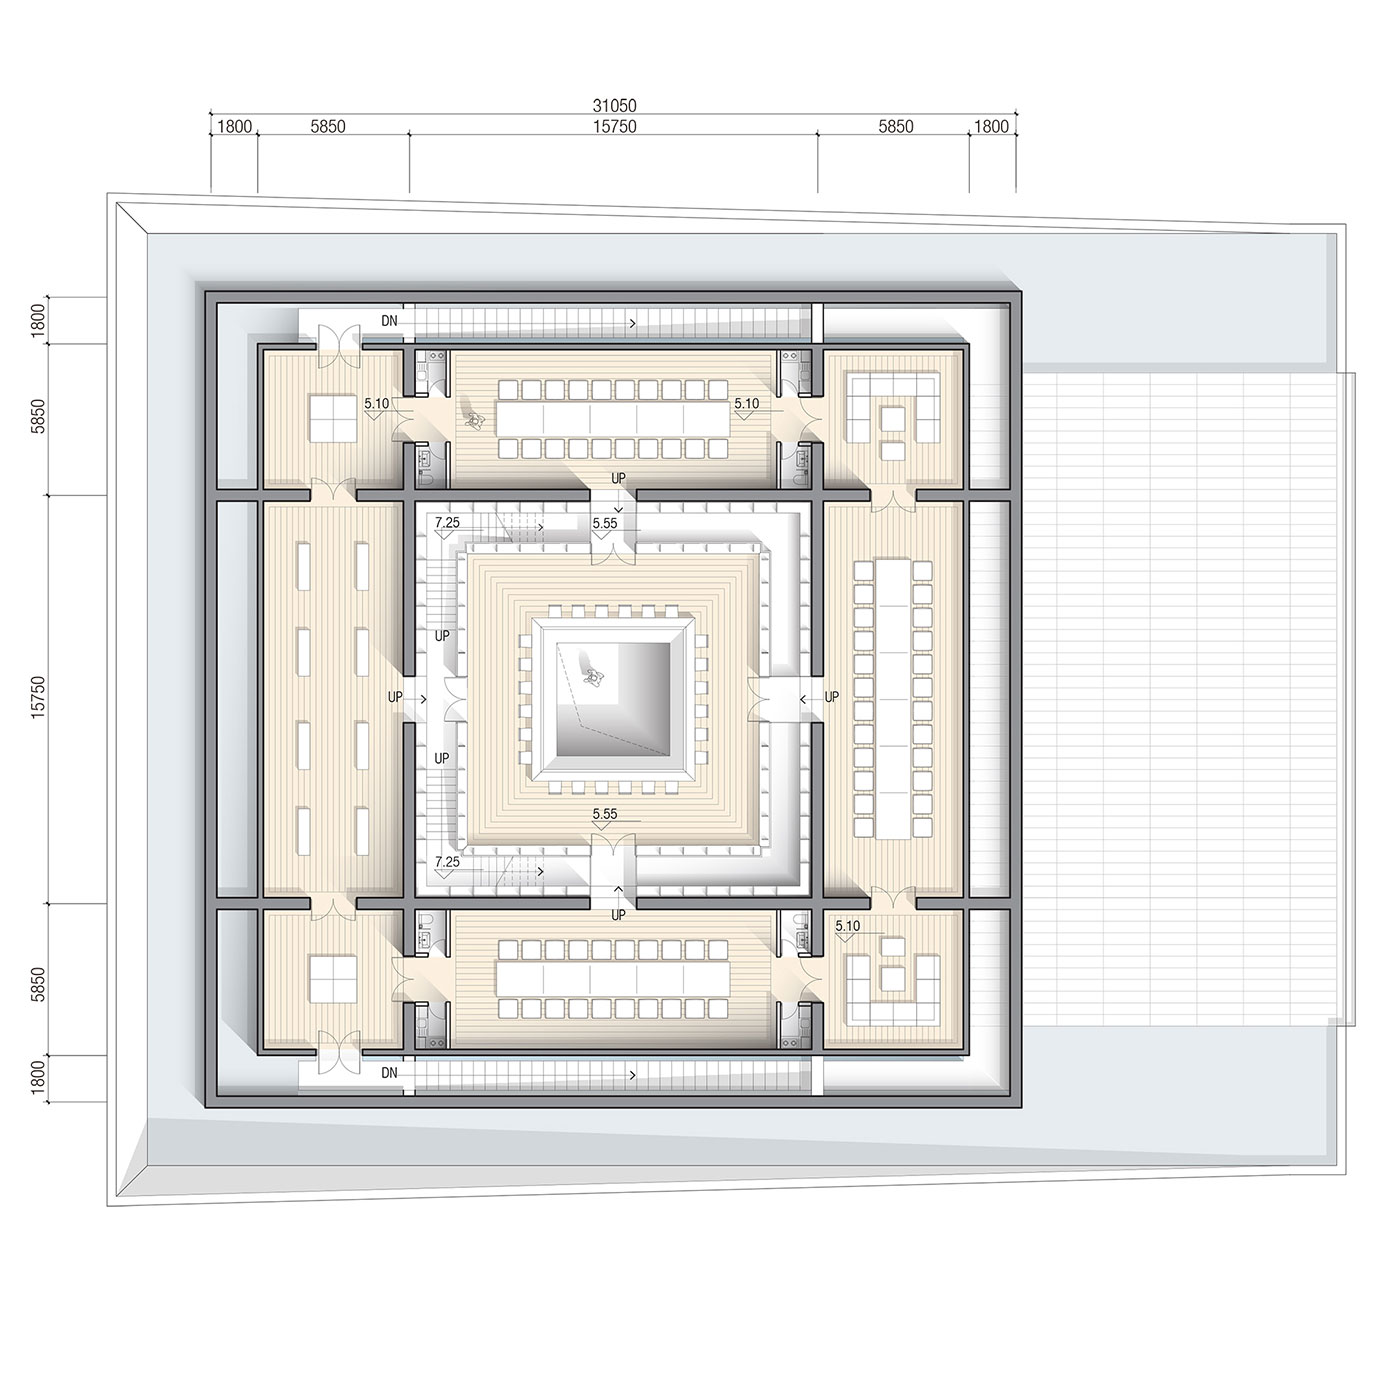 xuran lama temple and library jkp second floor plan